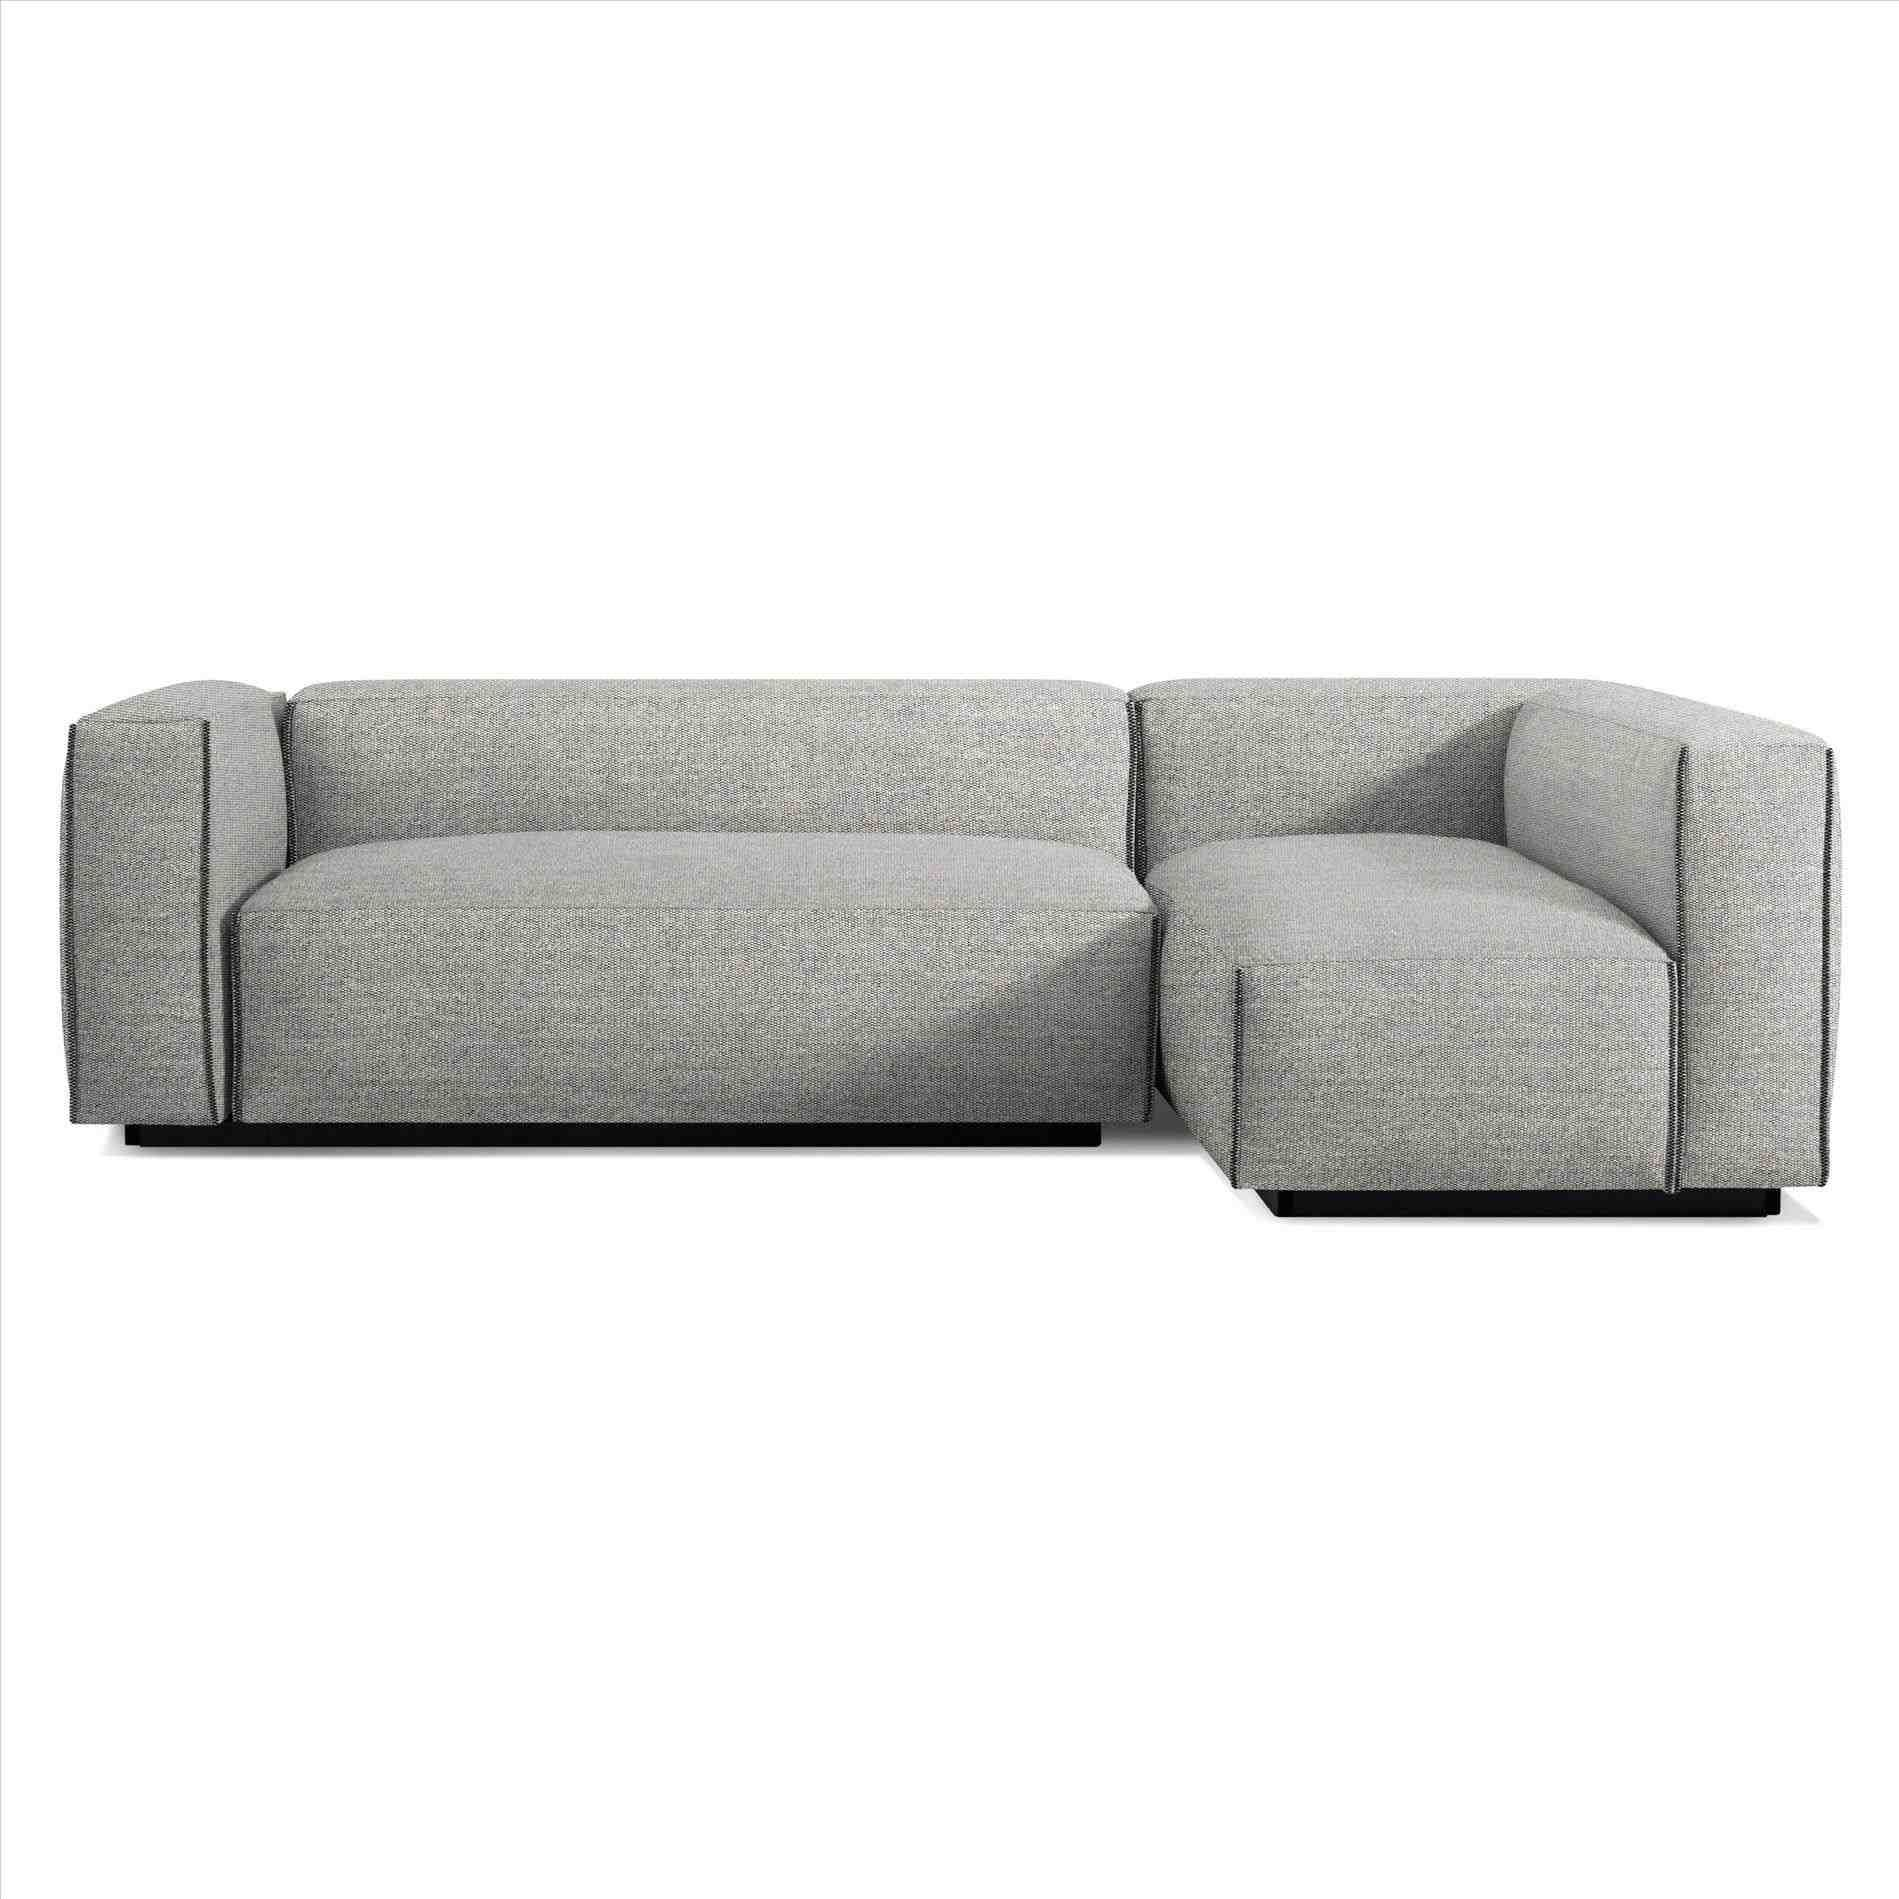 Cheap Recliners Toronto Modern Sofa Sectional Small Sectional